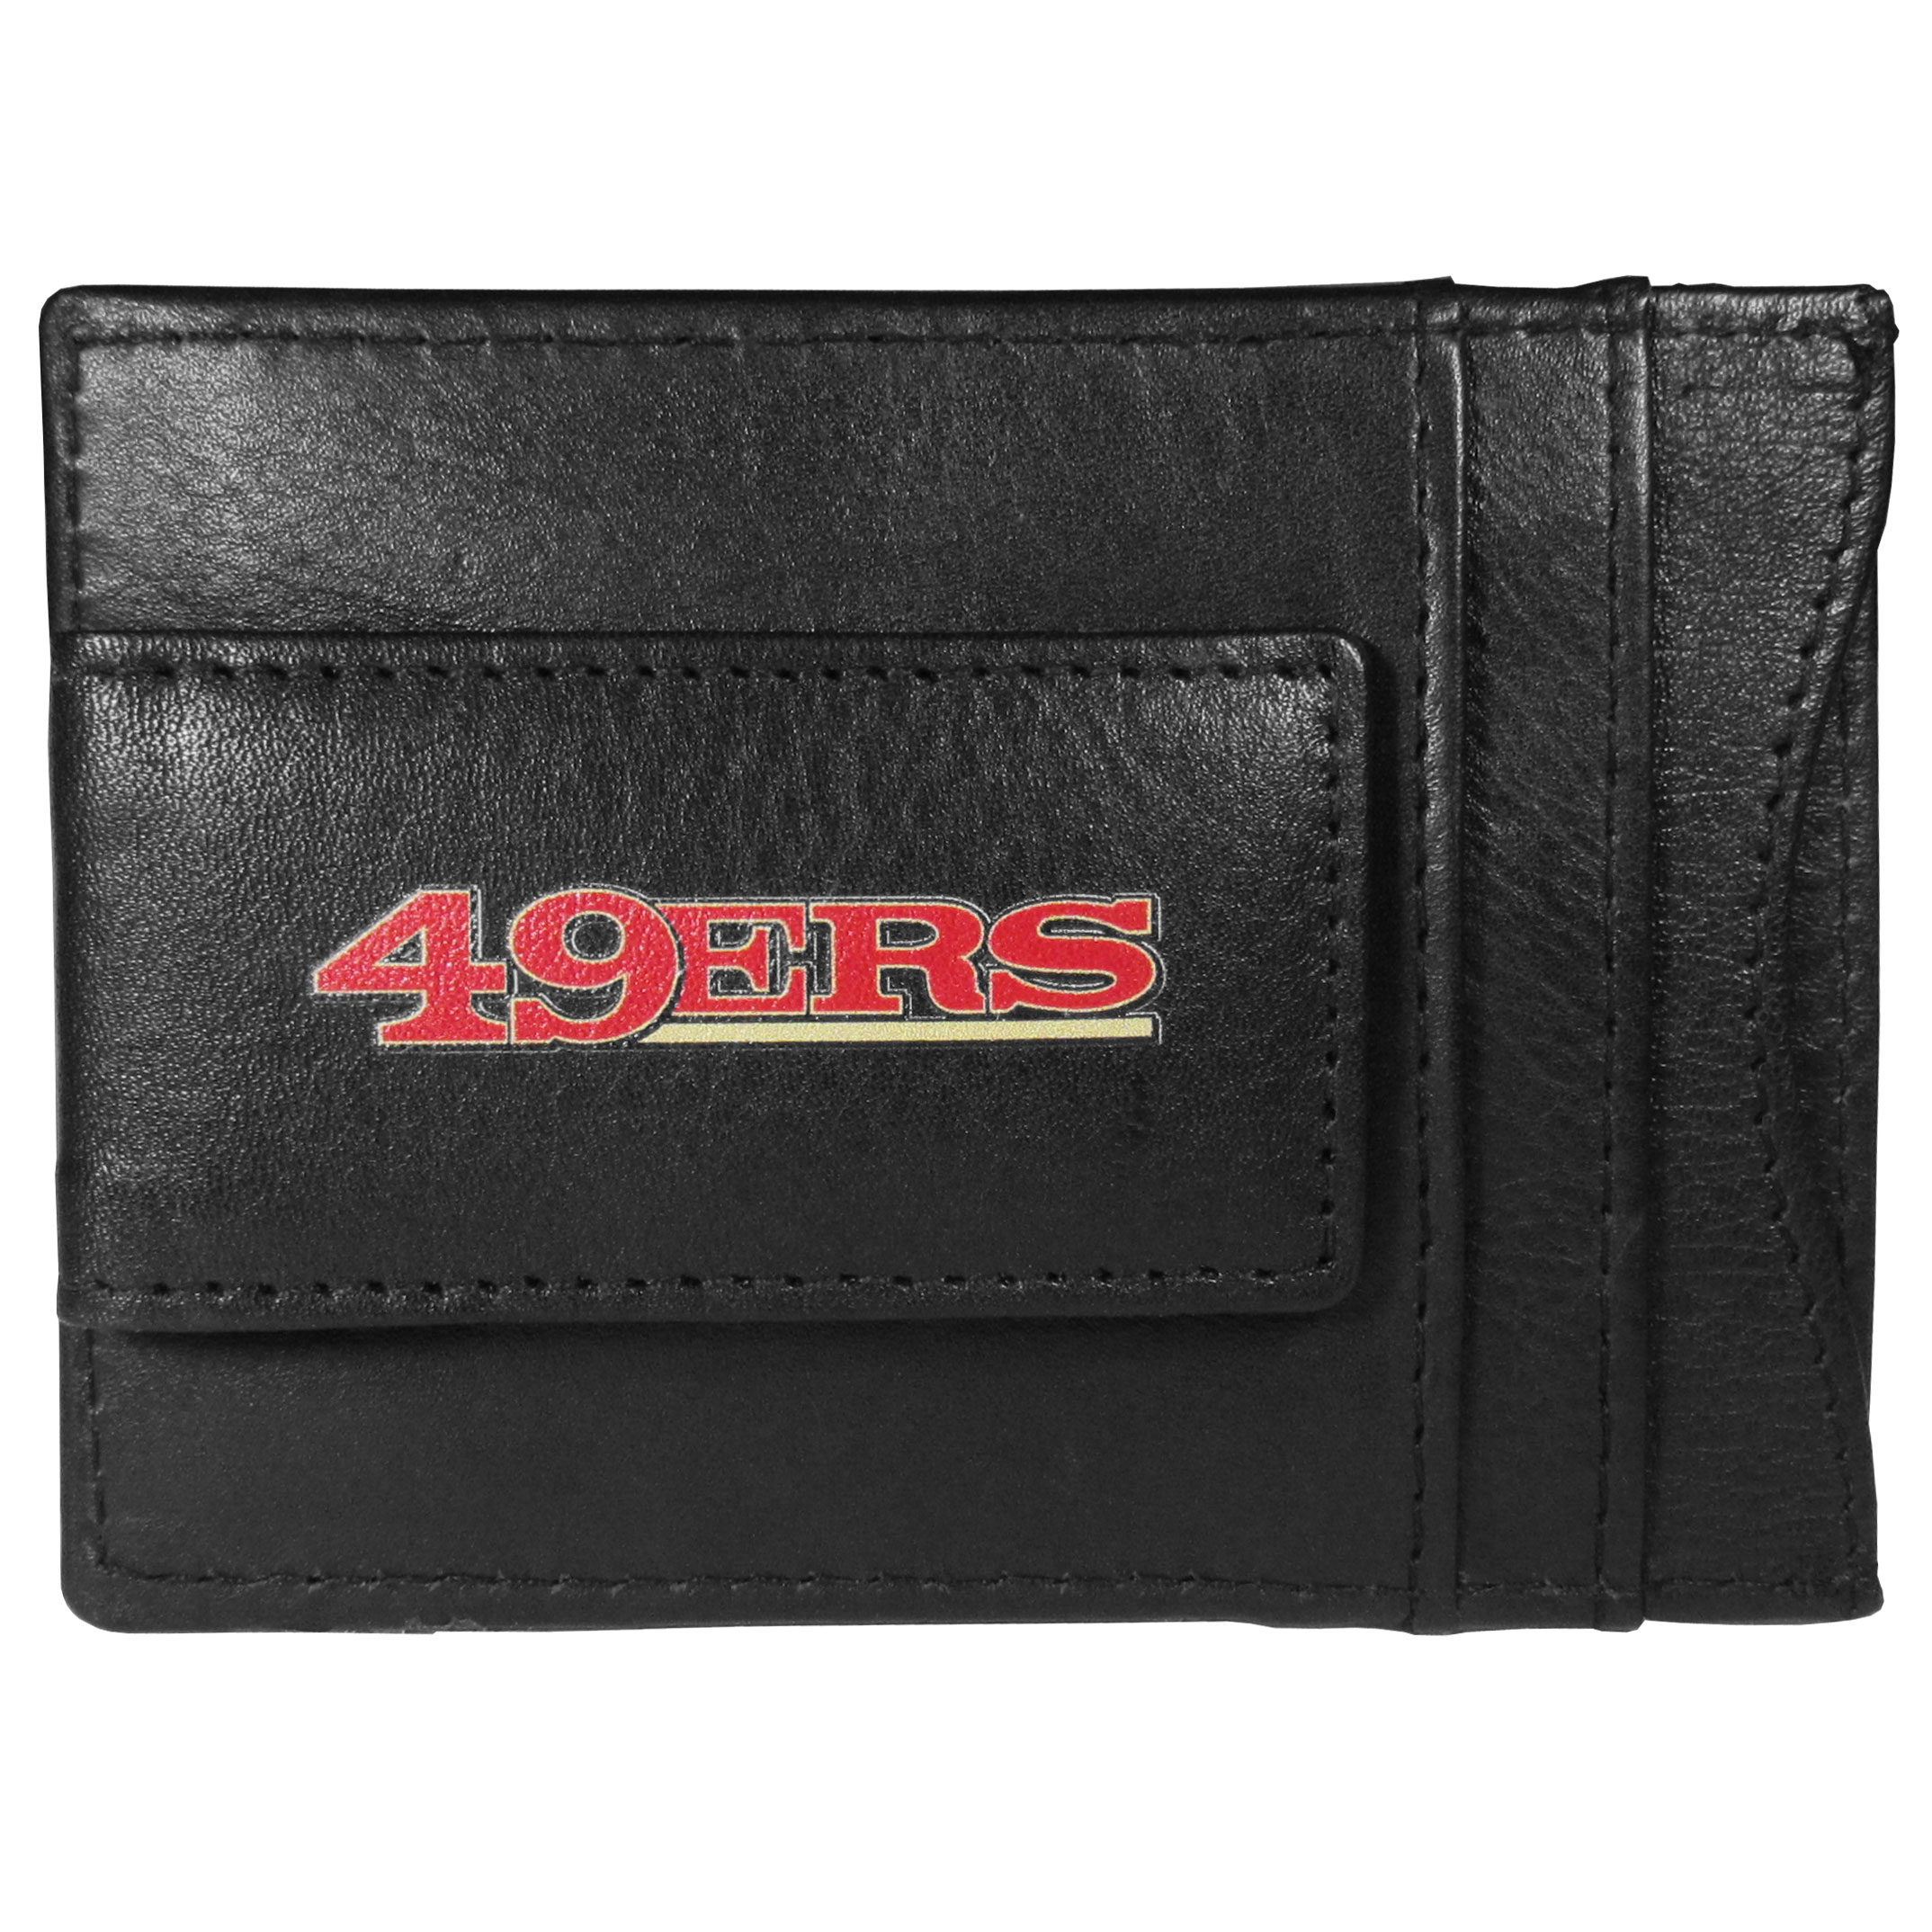 San Francisco 49ers Logo Leather Cash and Cardholder - This super slim leather wallet lets you have all the benefits of a money clip while keeping the organization of a wallet. On one side of this front pocket wallet there is a strong, magnetic money clip to keep your cash easily accessible and the?San Francisco 49ers team logo on the front. The versatile men's accessory is a perfect addition to your fan apparel.